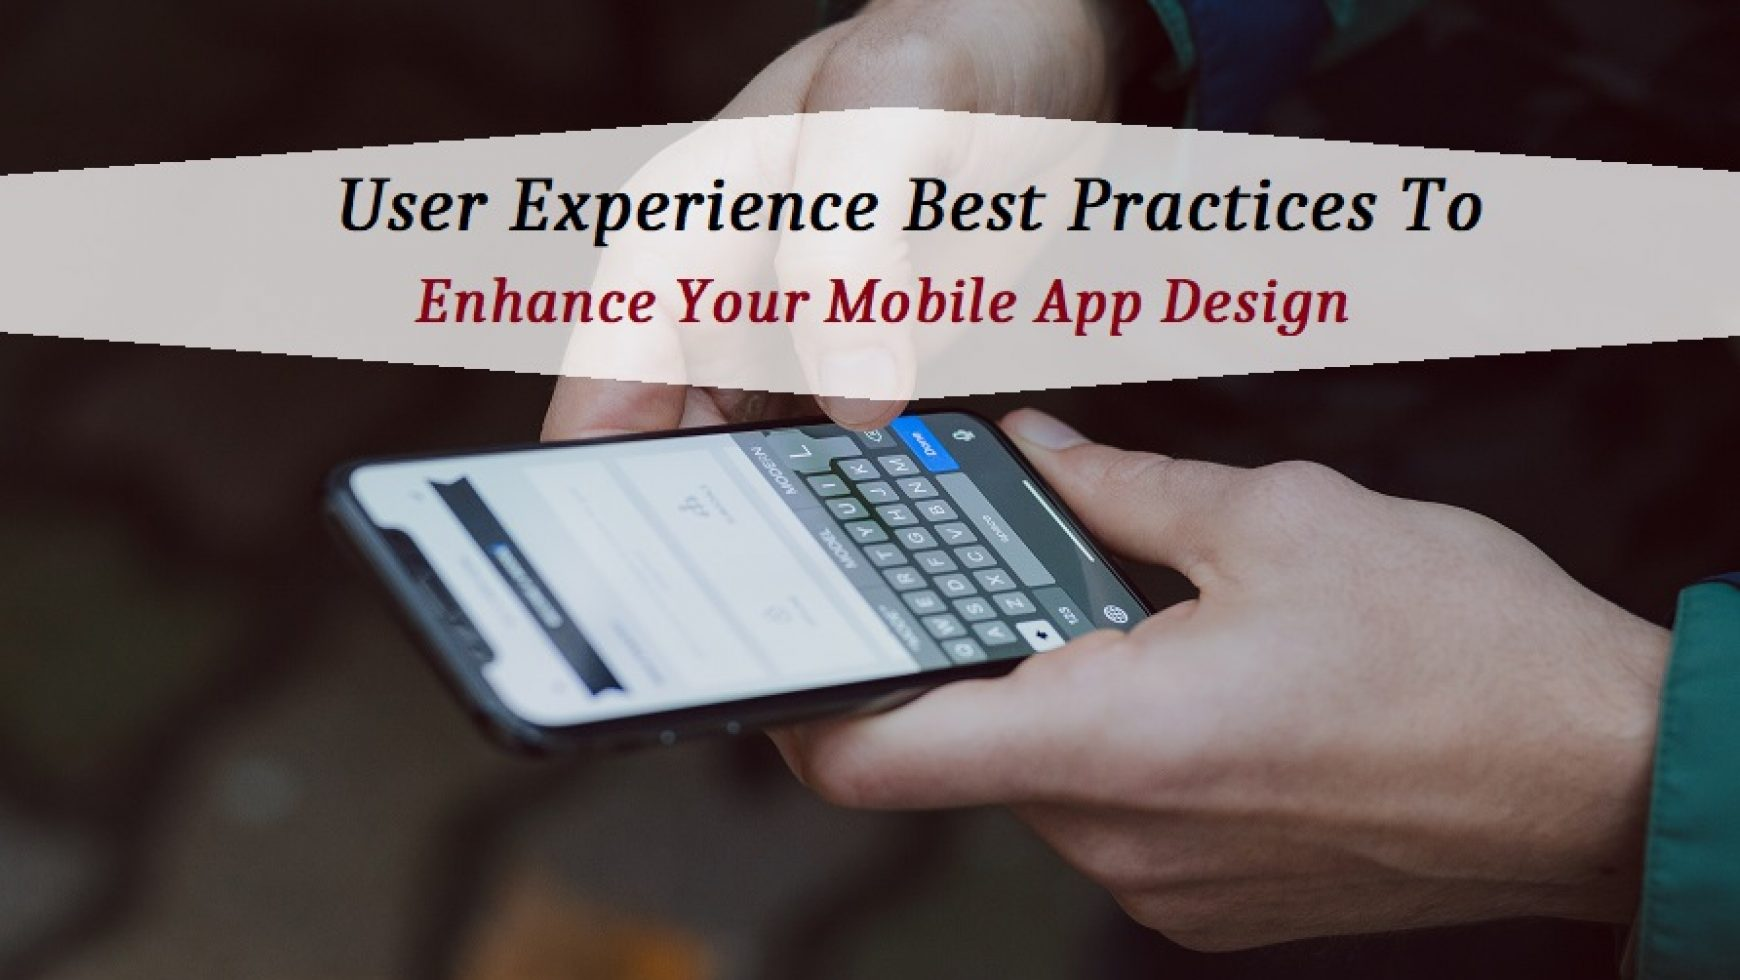 User Experience Best Practices to Enhance Your Mobile App Design